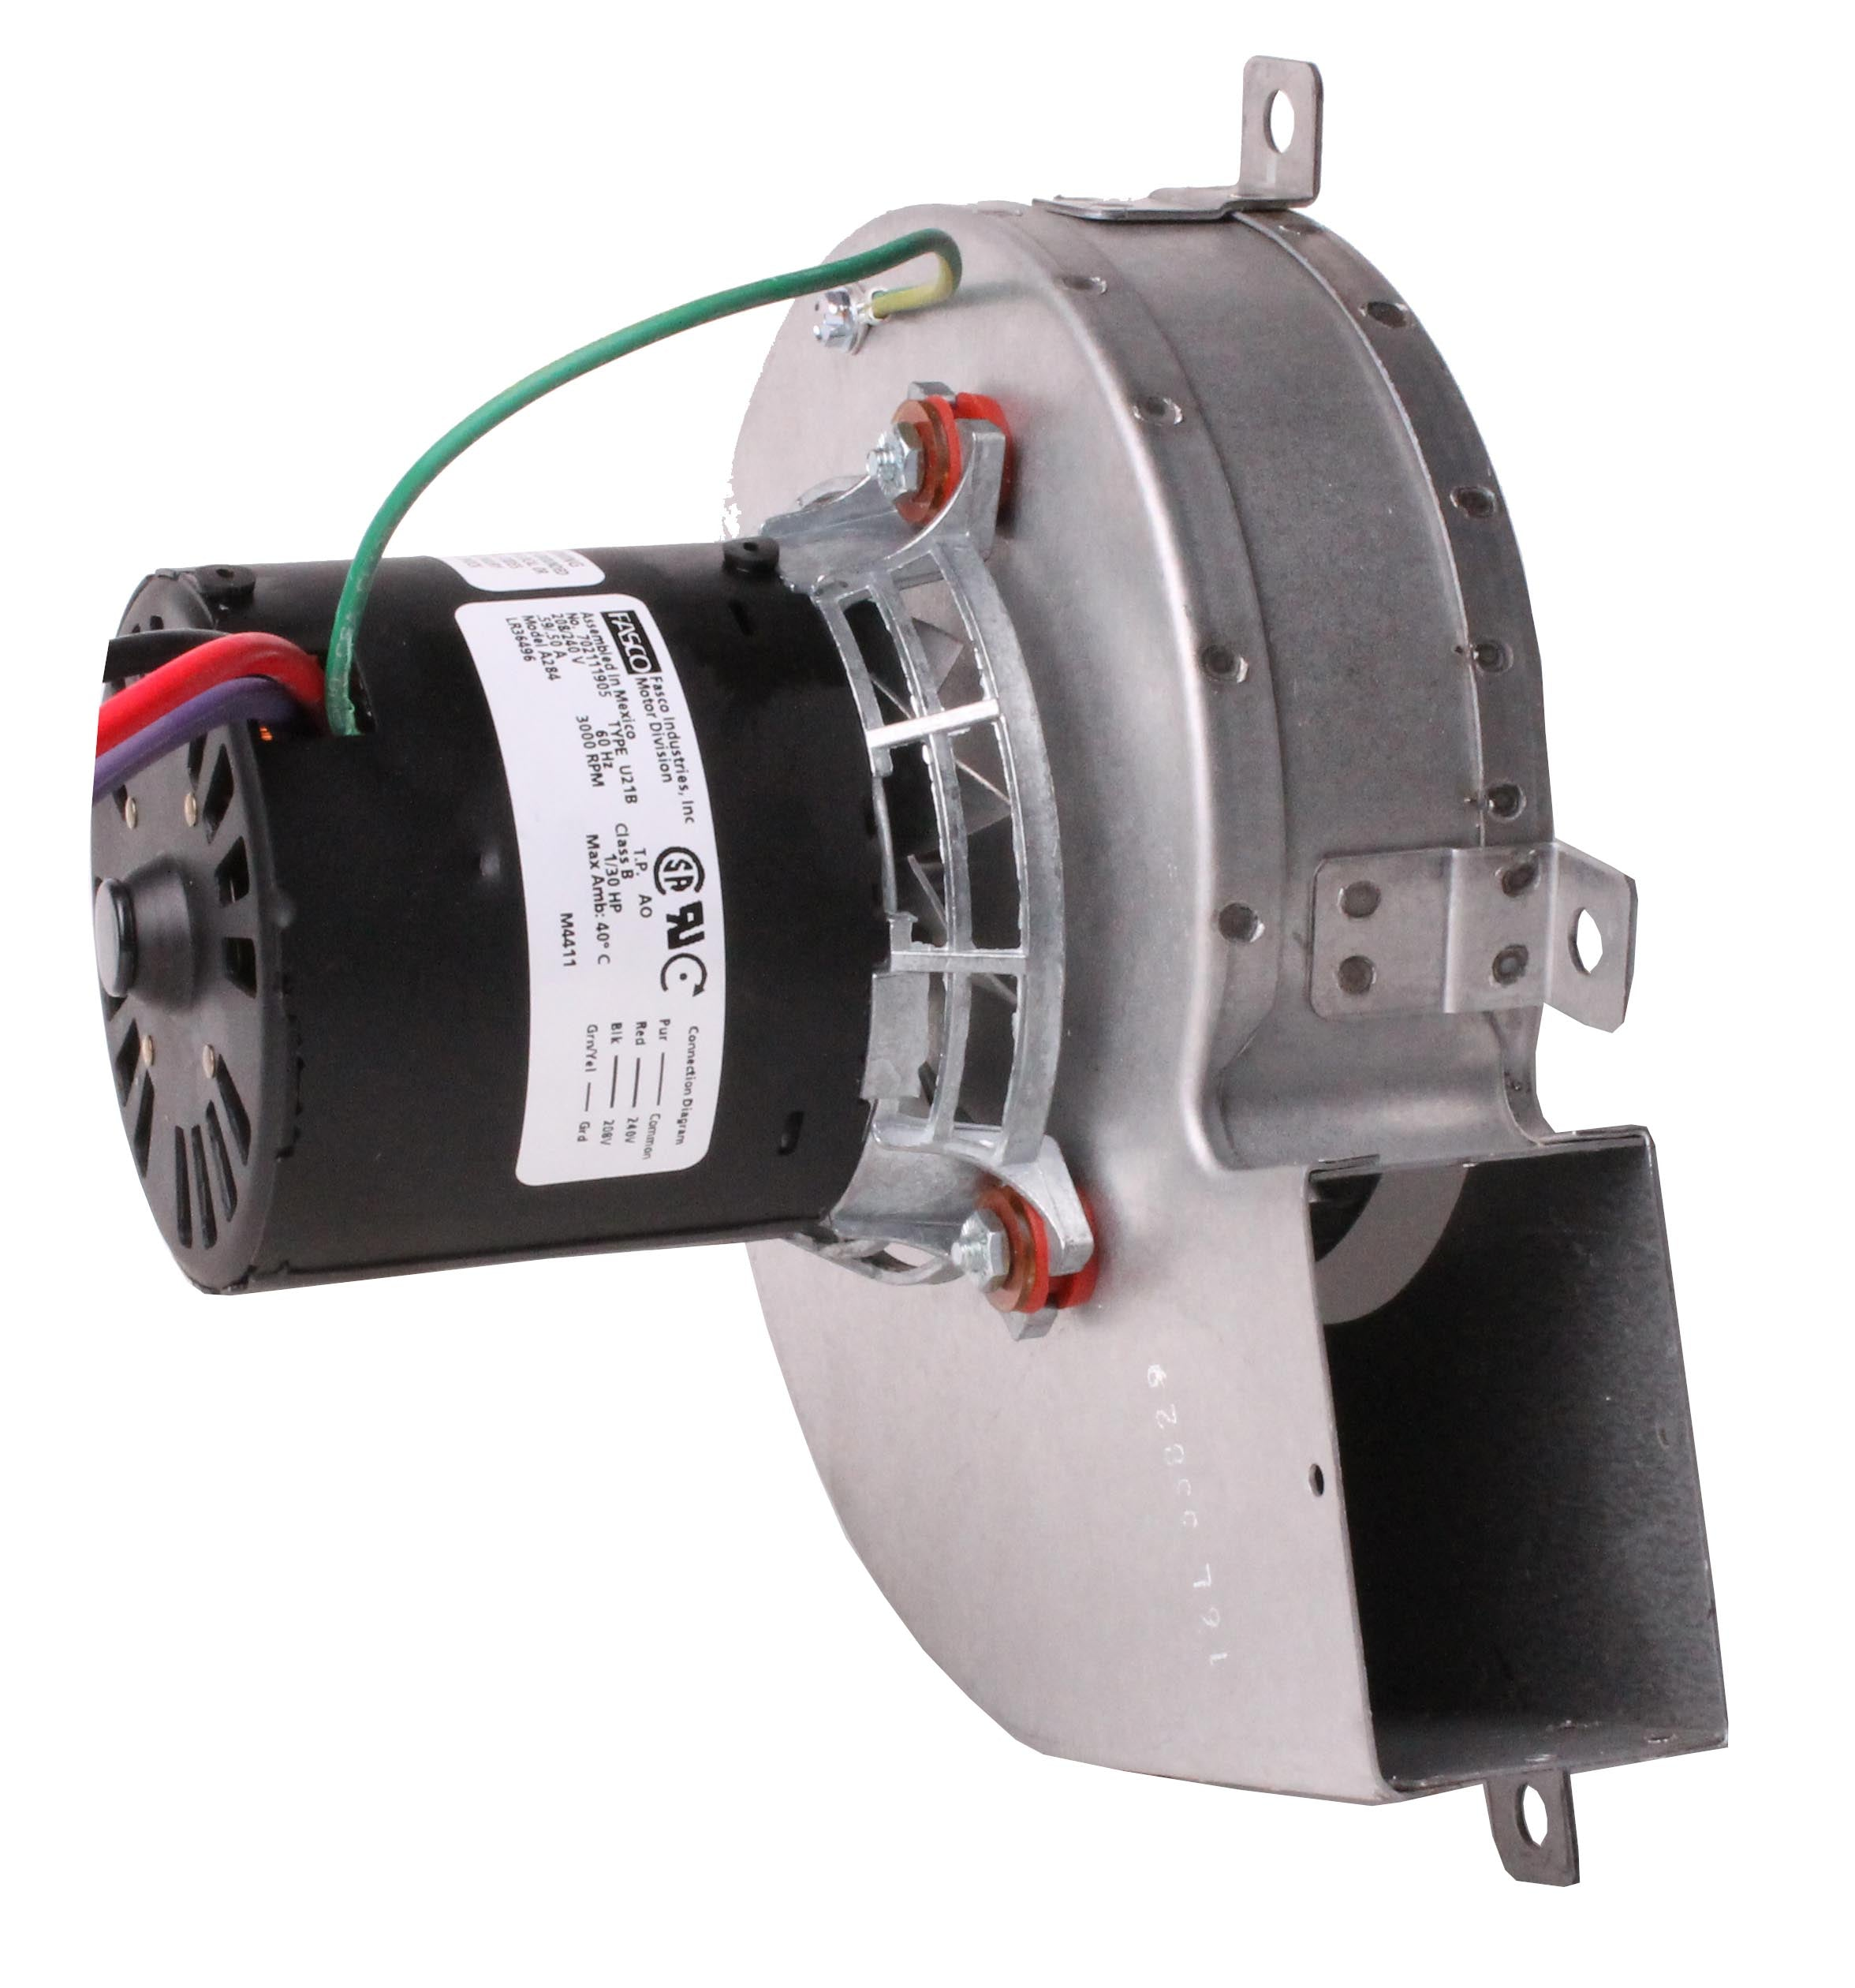 https://hvacpartsoutlet.com/products/fasco-60761101 ... on